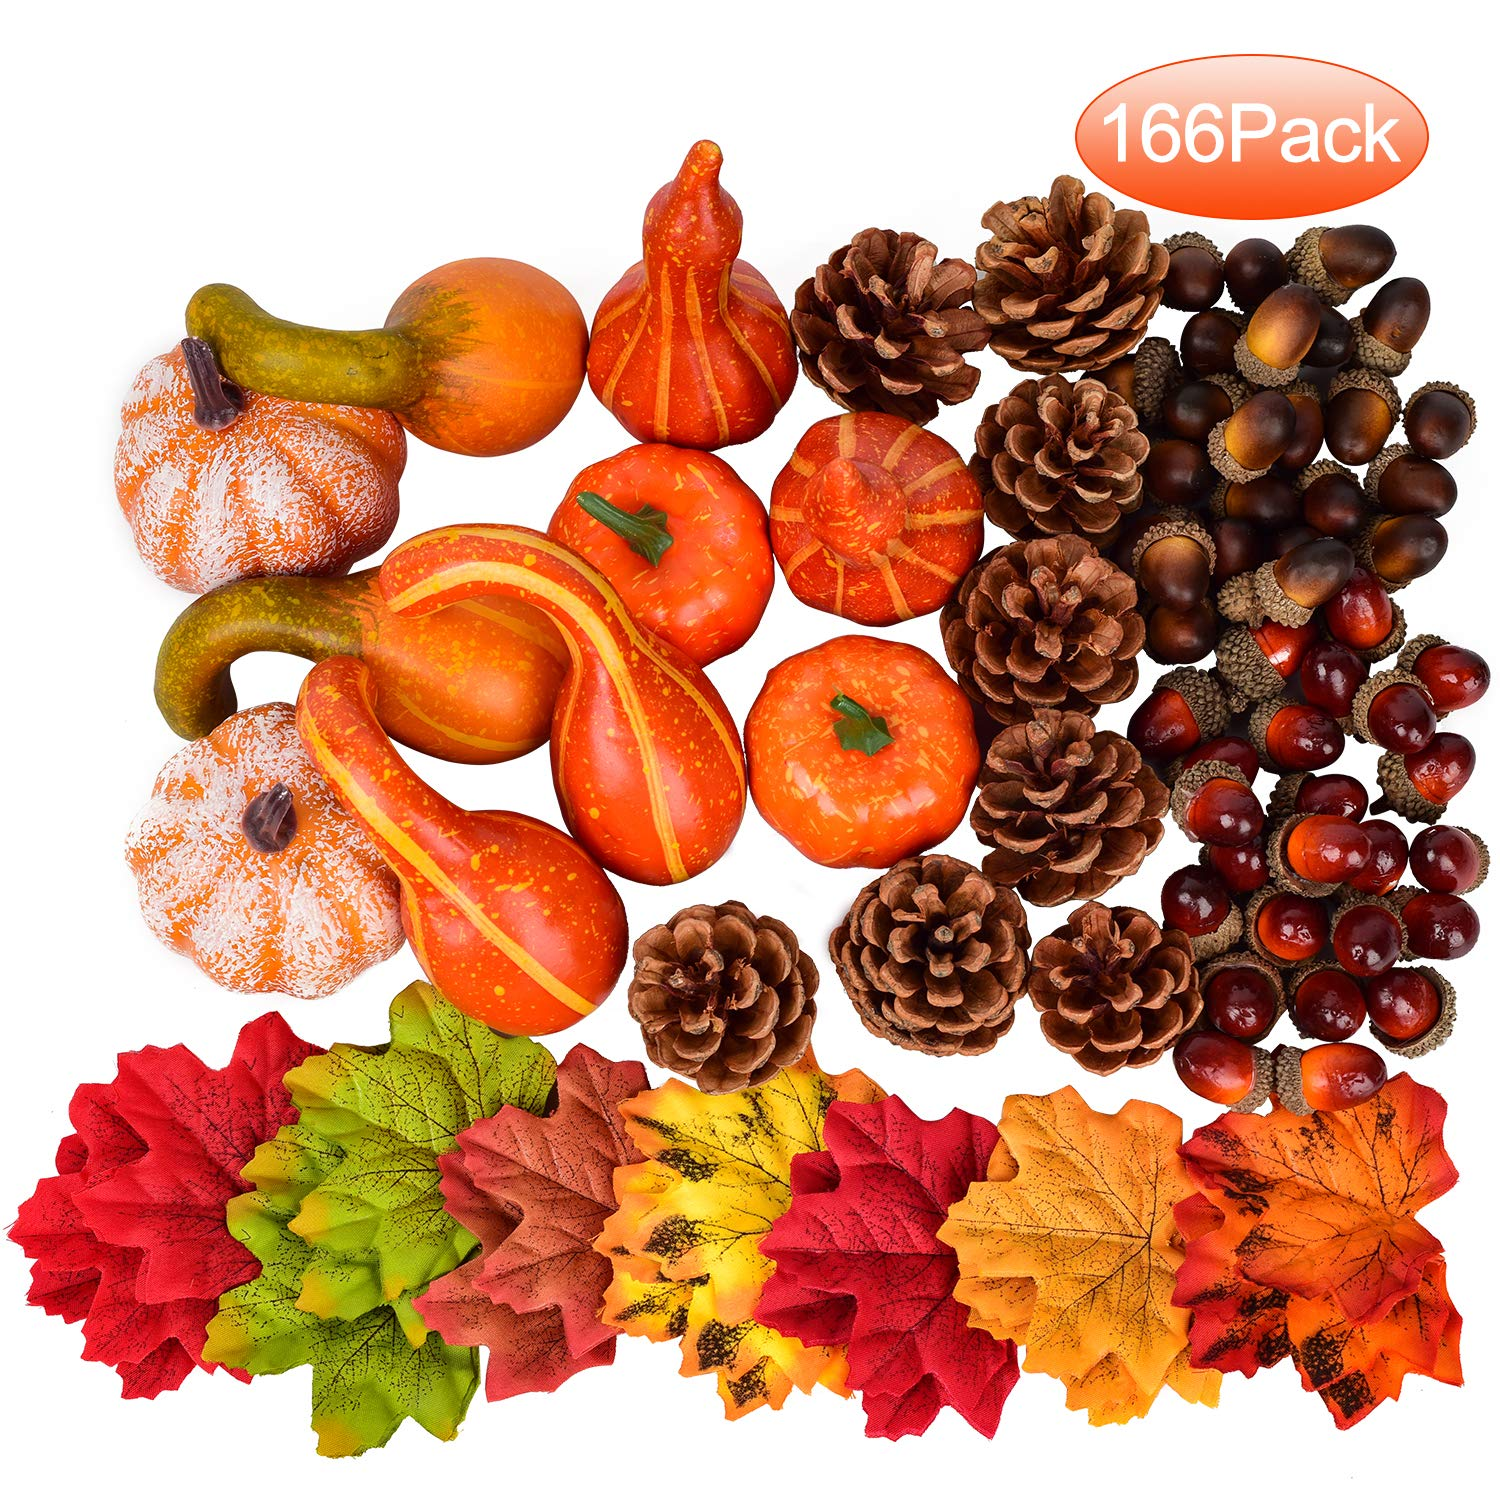 Woooow Artificial Autumn Gourds, Mini Pumpkins, Pine Cones, Leaves, Acorns and Berries Fall Decorating Kit Thanksgiving Halloween Party Decor